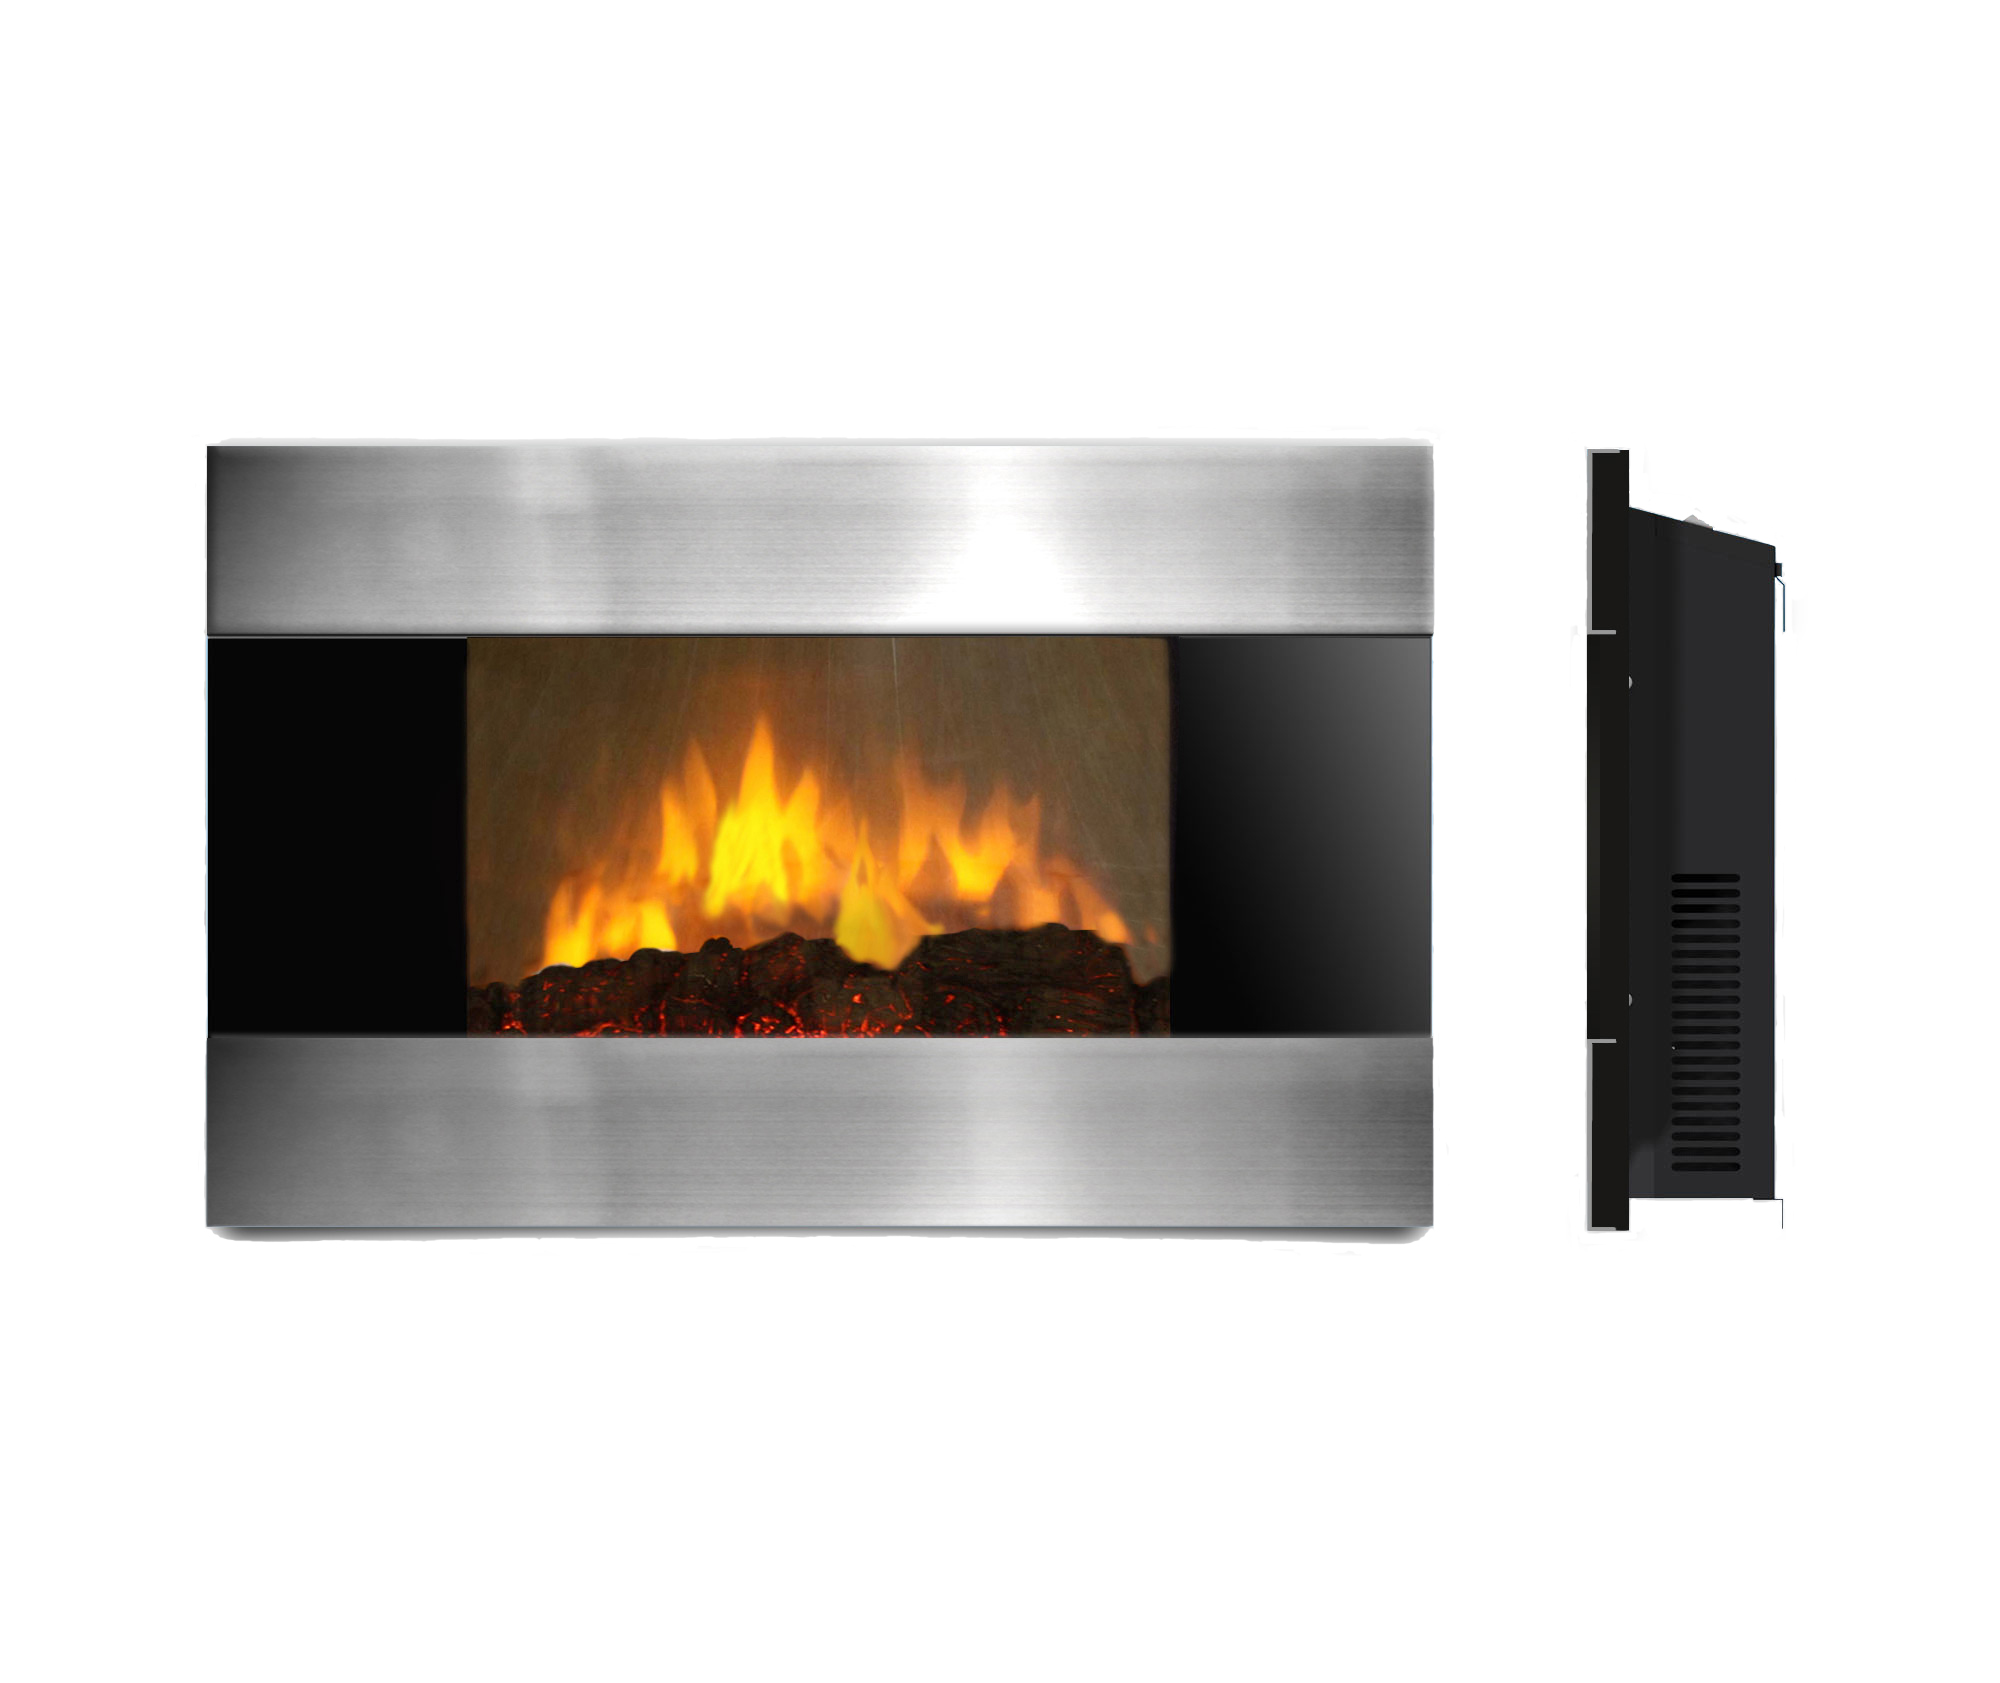 ambionair flame led wall mounted fireplace ef 1510 sl